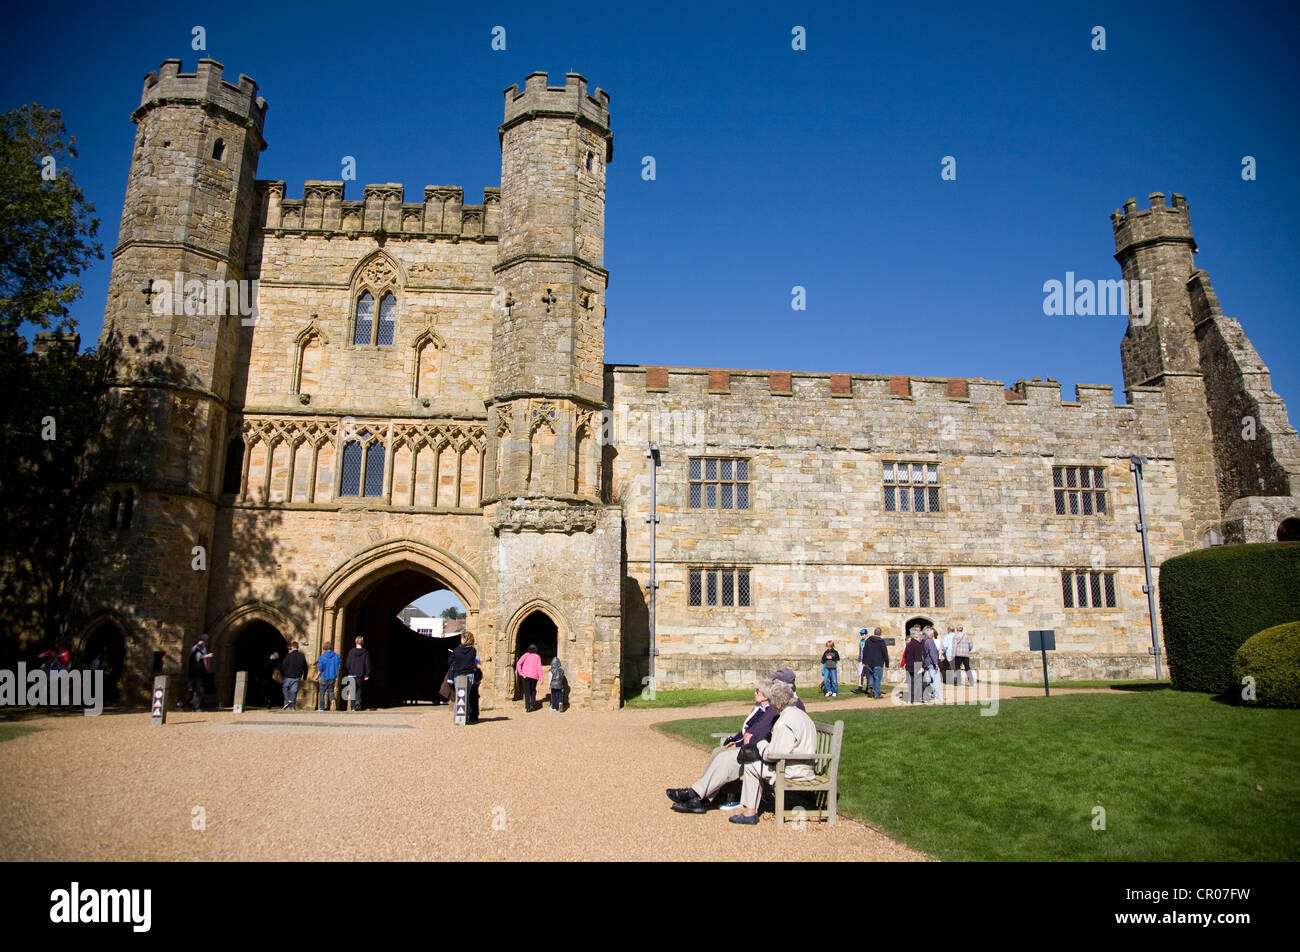 Facade of the main entrance gate. Battle Abbey. East Sussex. England. - Stock Image